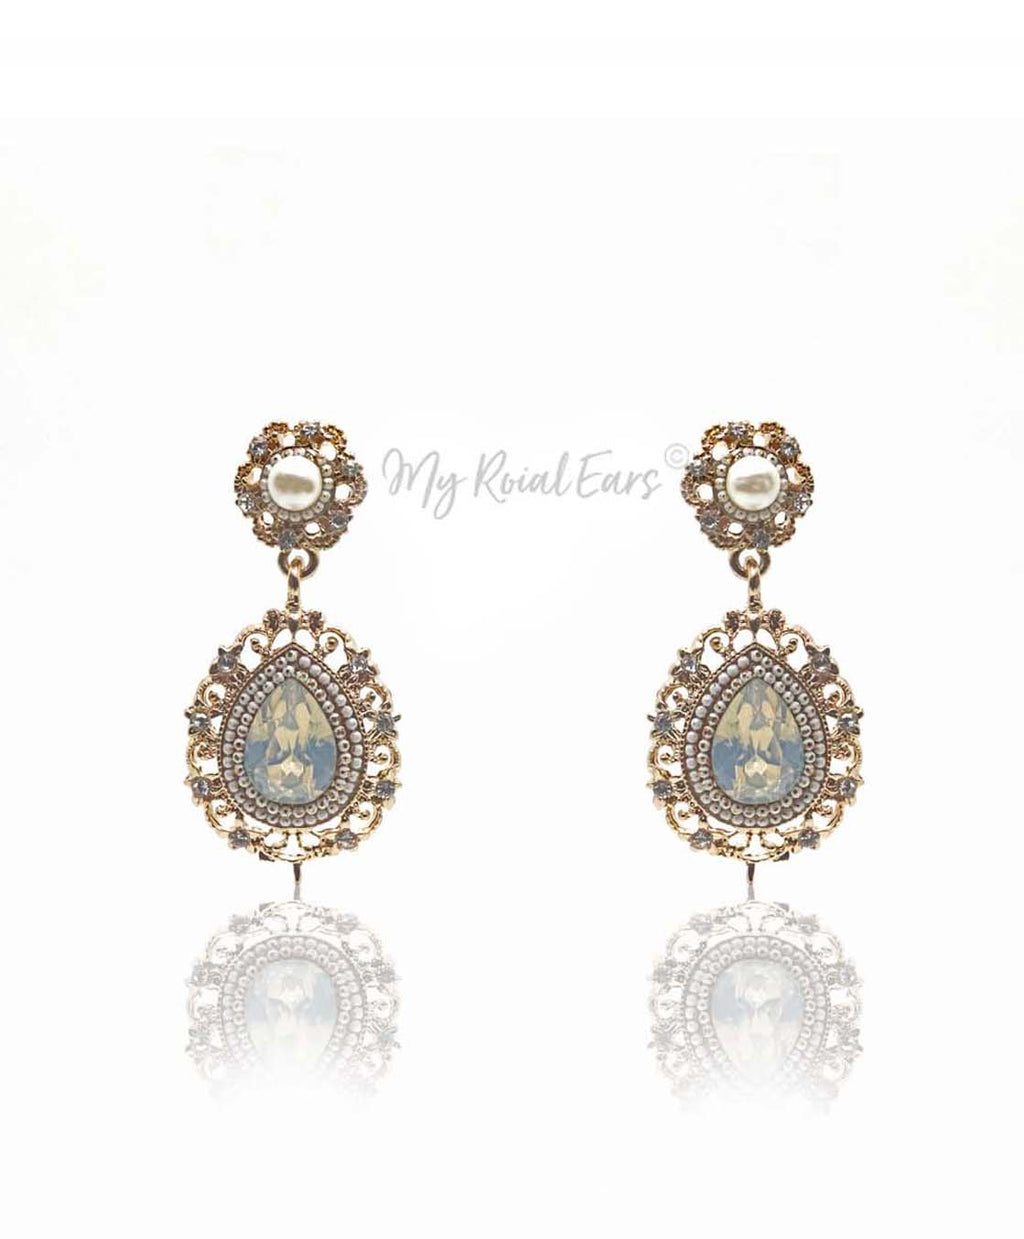 Q.YASMIN-golden elegance bridal drop earrings - My Roial Ears LTD